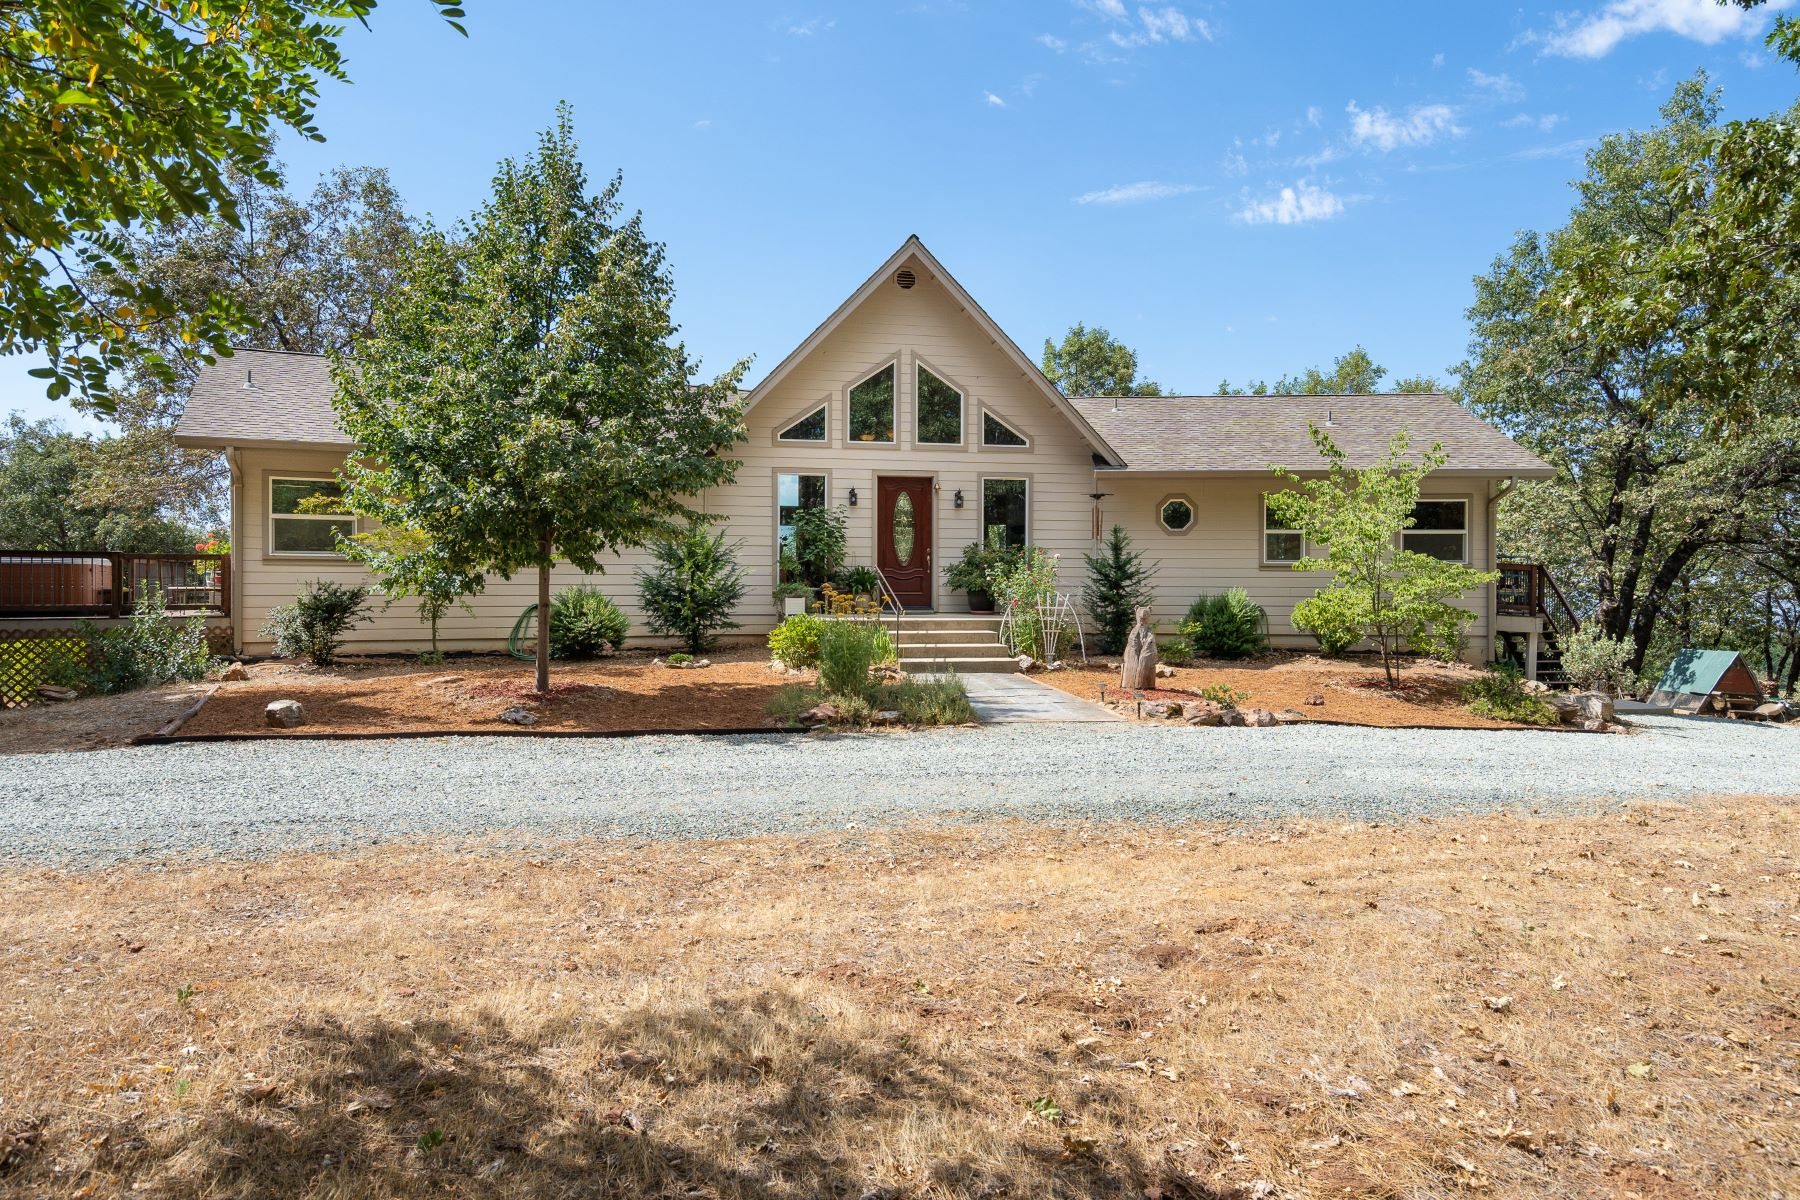 Single Family Homes for Active at 20500 Fiddletown Road, Fiddletown, CA 95629 20500 Ponderosa Way Fiddletown, California 95629 United States